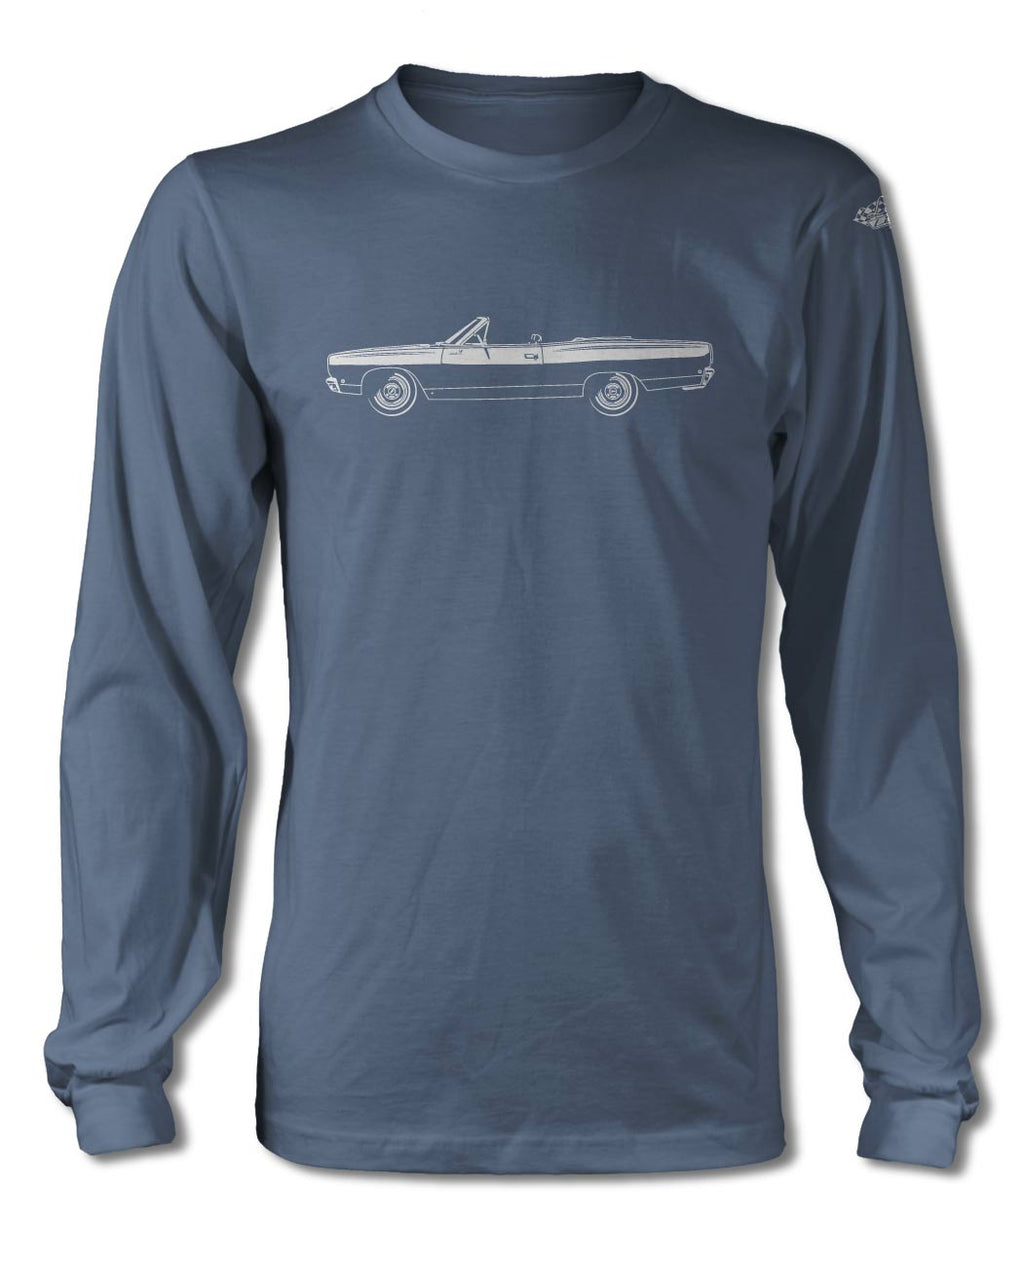 1968 Plymouth Road Runner Convertible T-Shirt - Long Sleeves - Side View